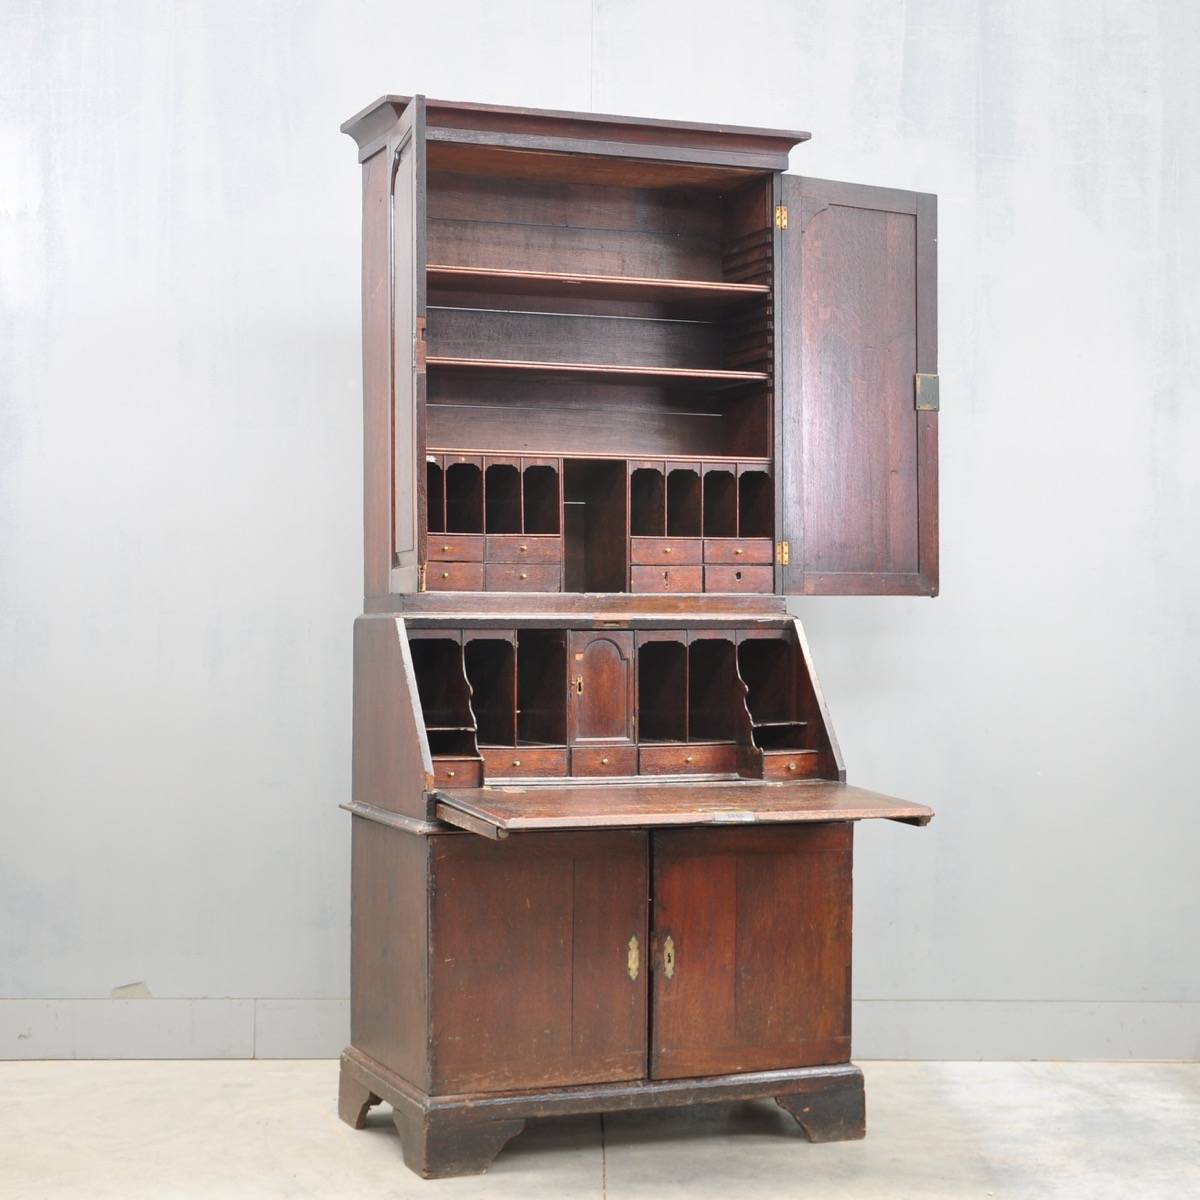 Antique English oak bureau bookcase | De Grande Antique Furniture - The English Antique Furniture Collections